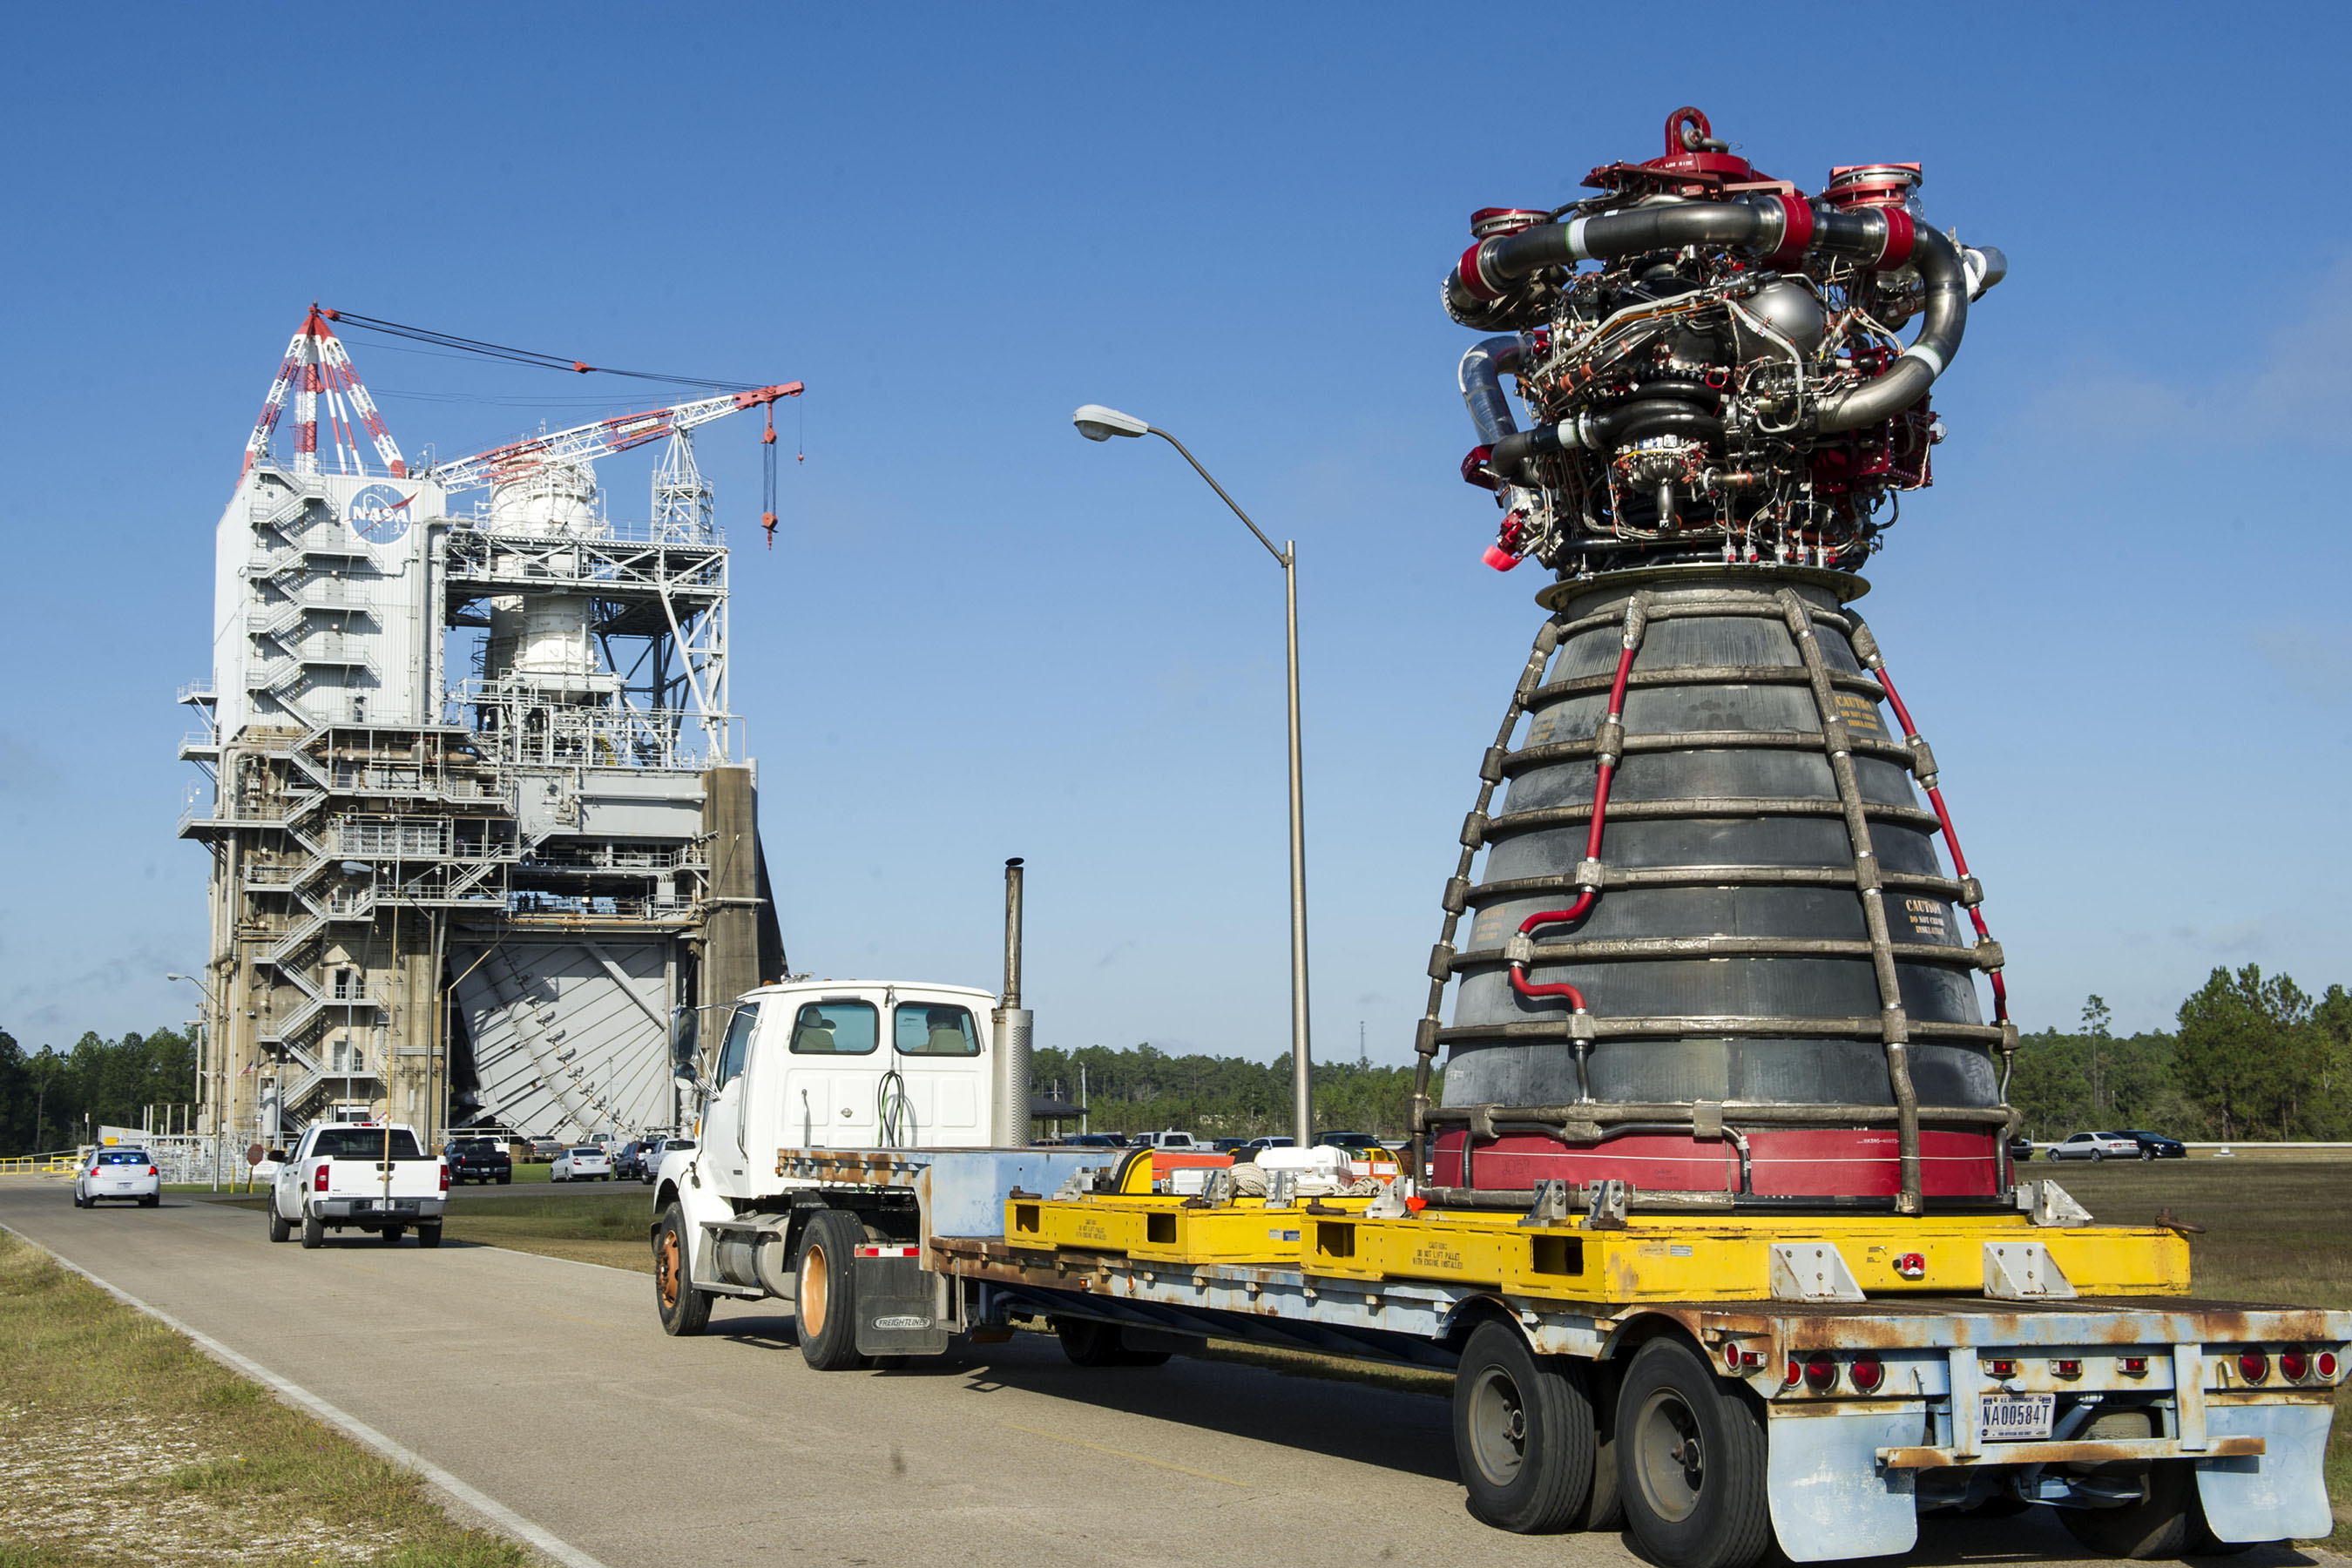 https://www.nasa.gov/press-release/nasa-prepares-to-fly-first-rs-25-flight-engine-test-set-for-march